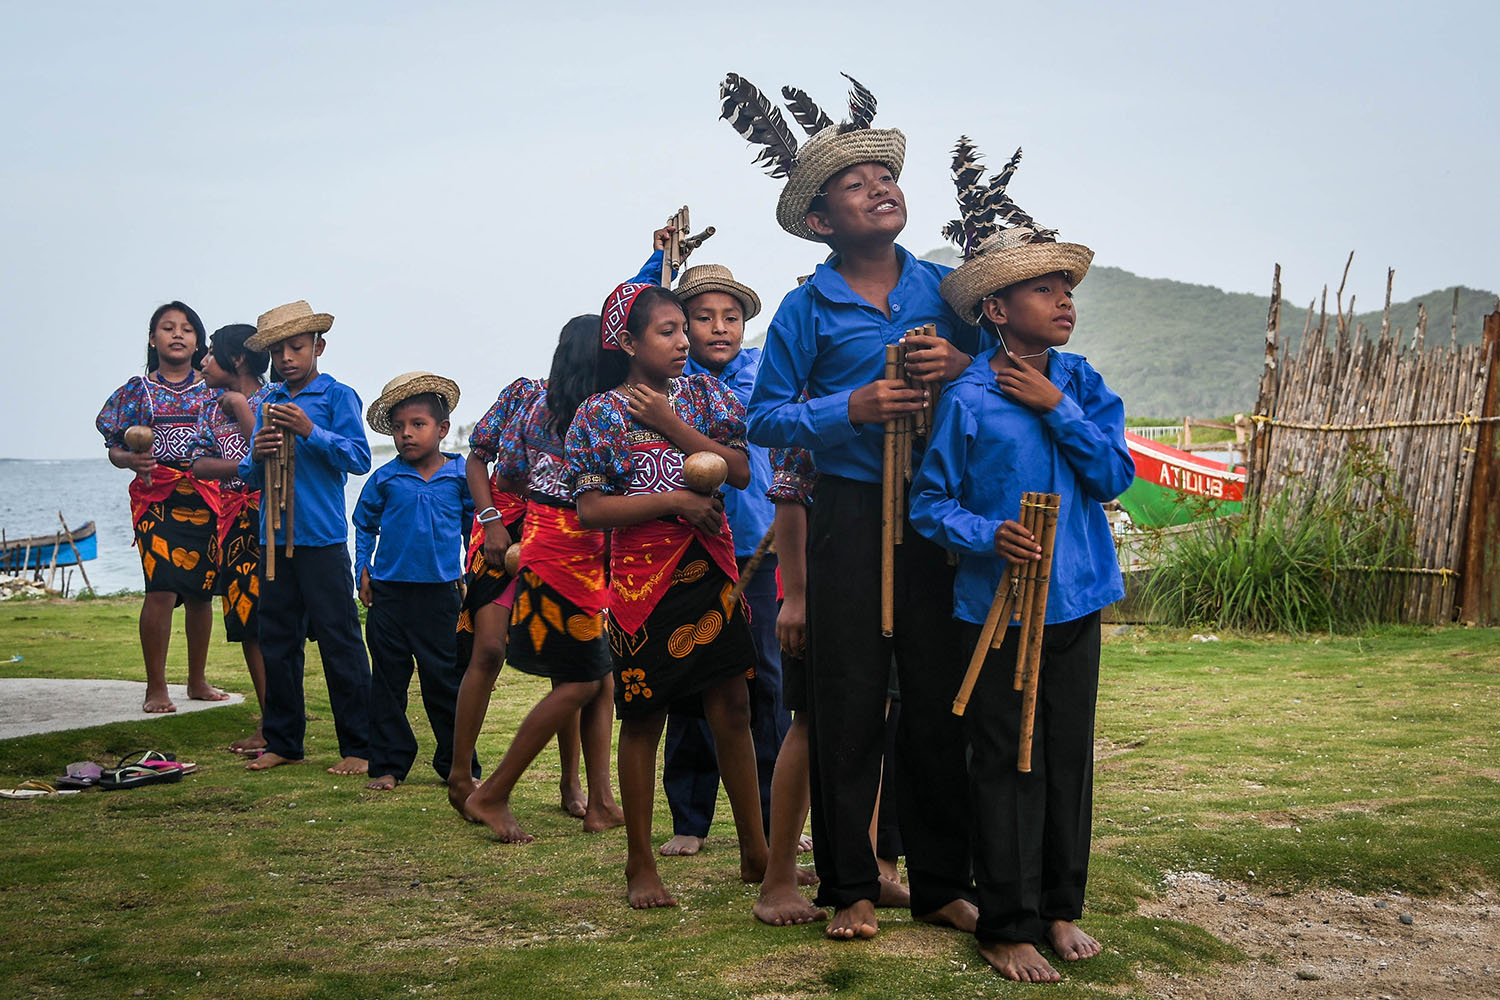 San Blas Islands Panama to Colombia Kuna Children Dance